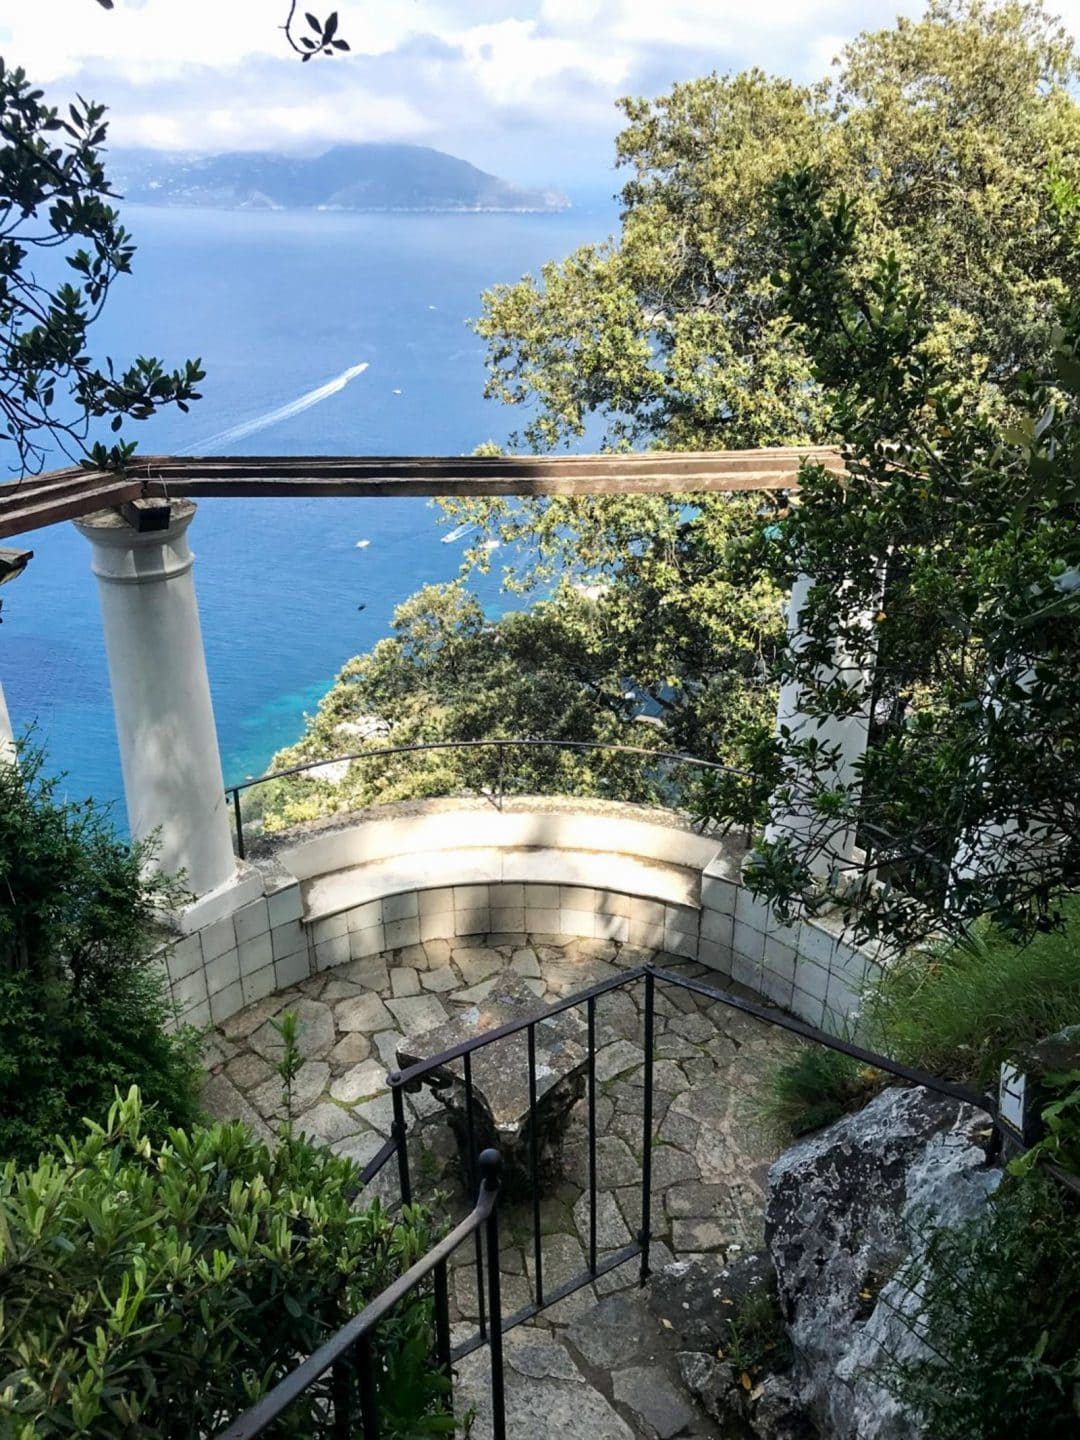 A Capri garden looking down on the Mediterranean sea.